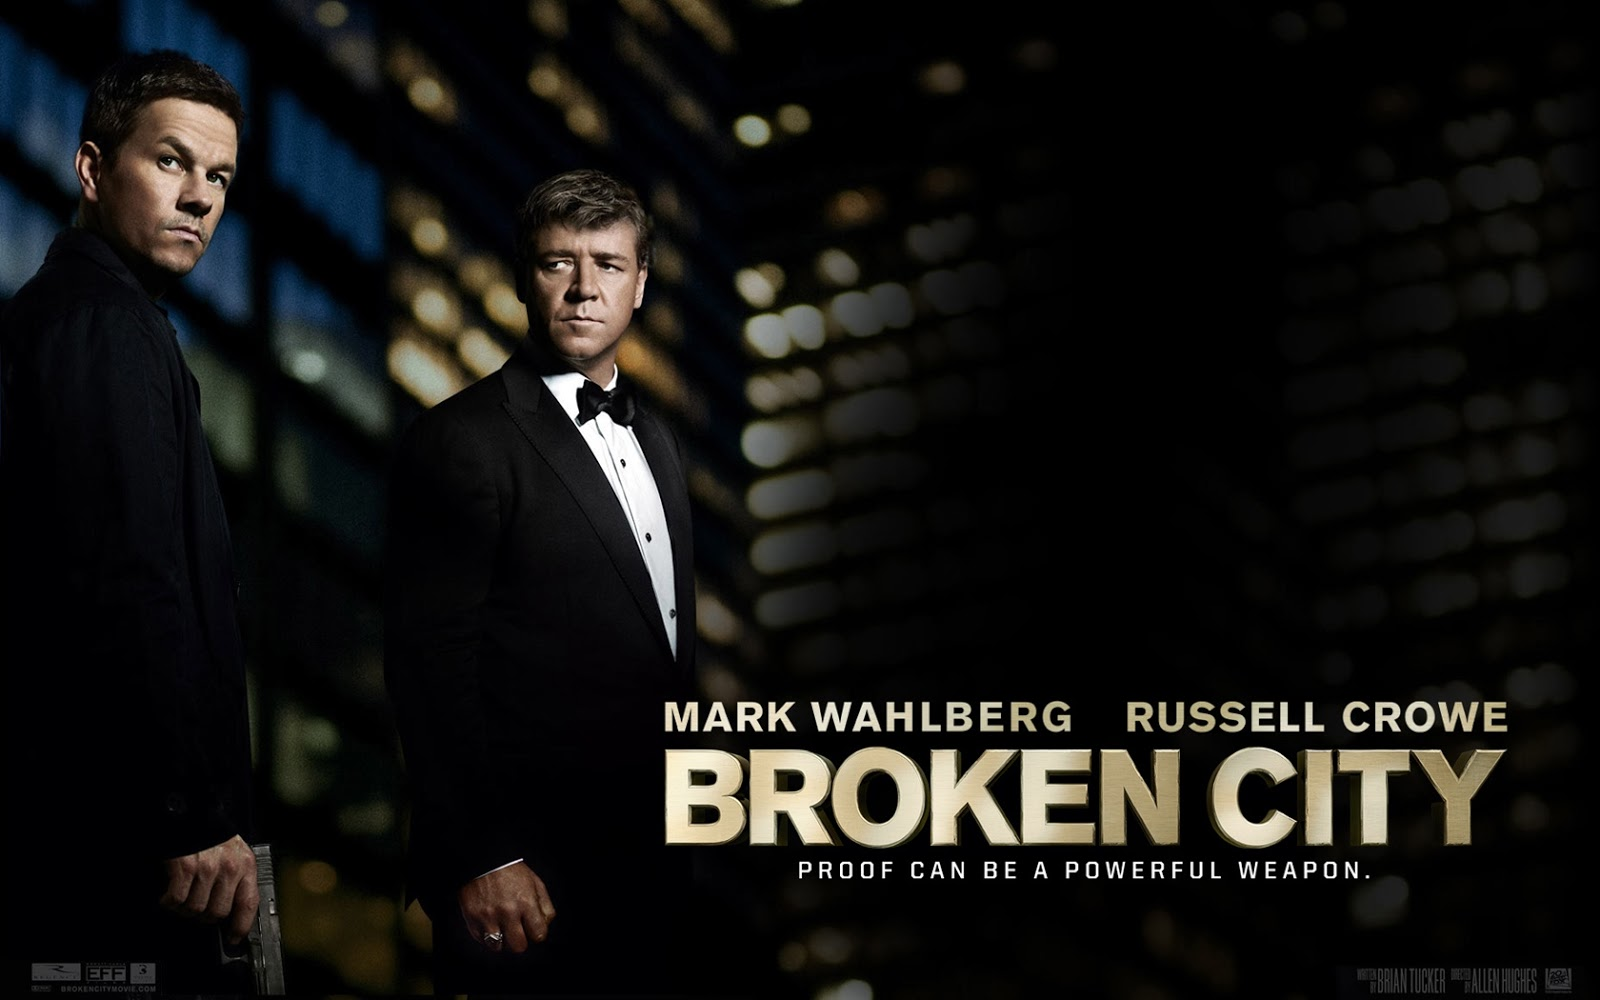 Getting it Fixed: Broken City (2013)